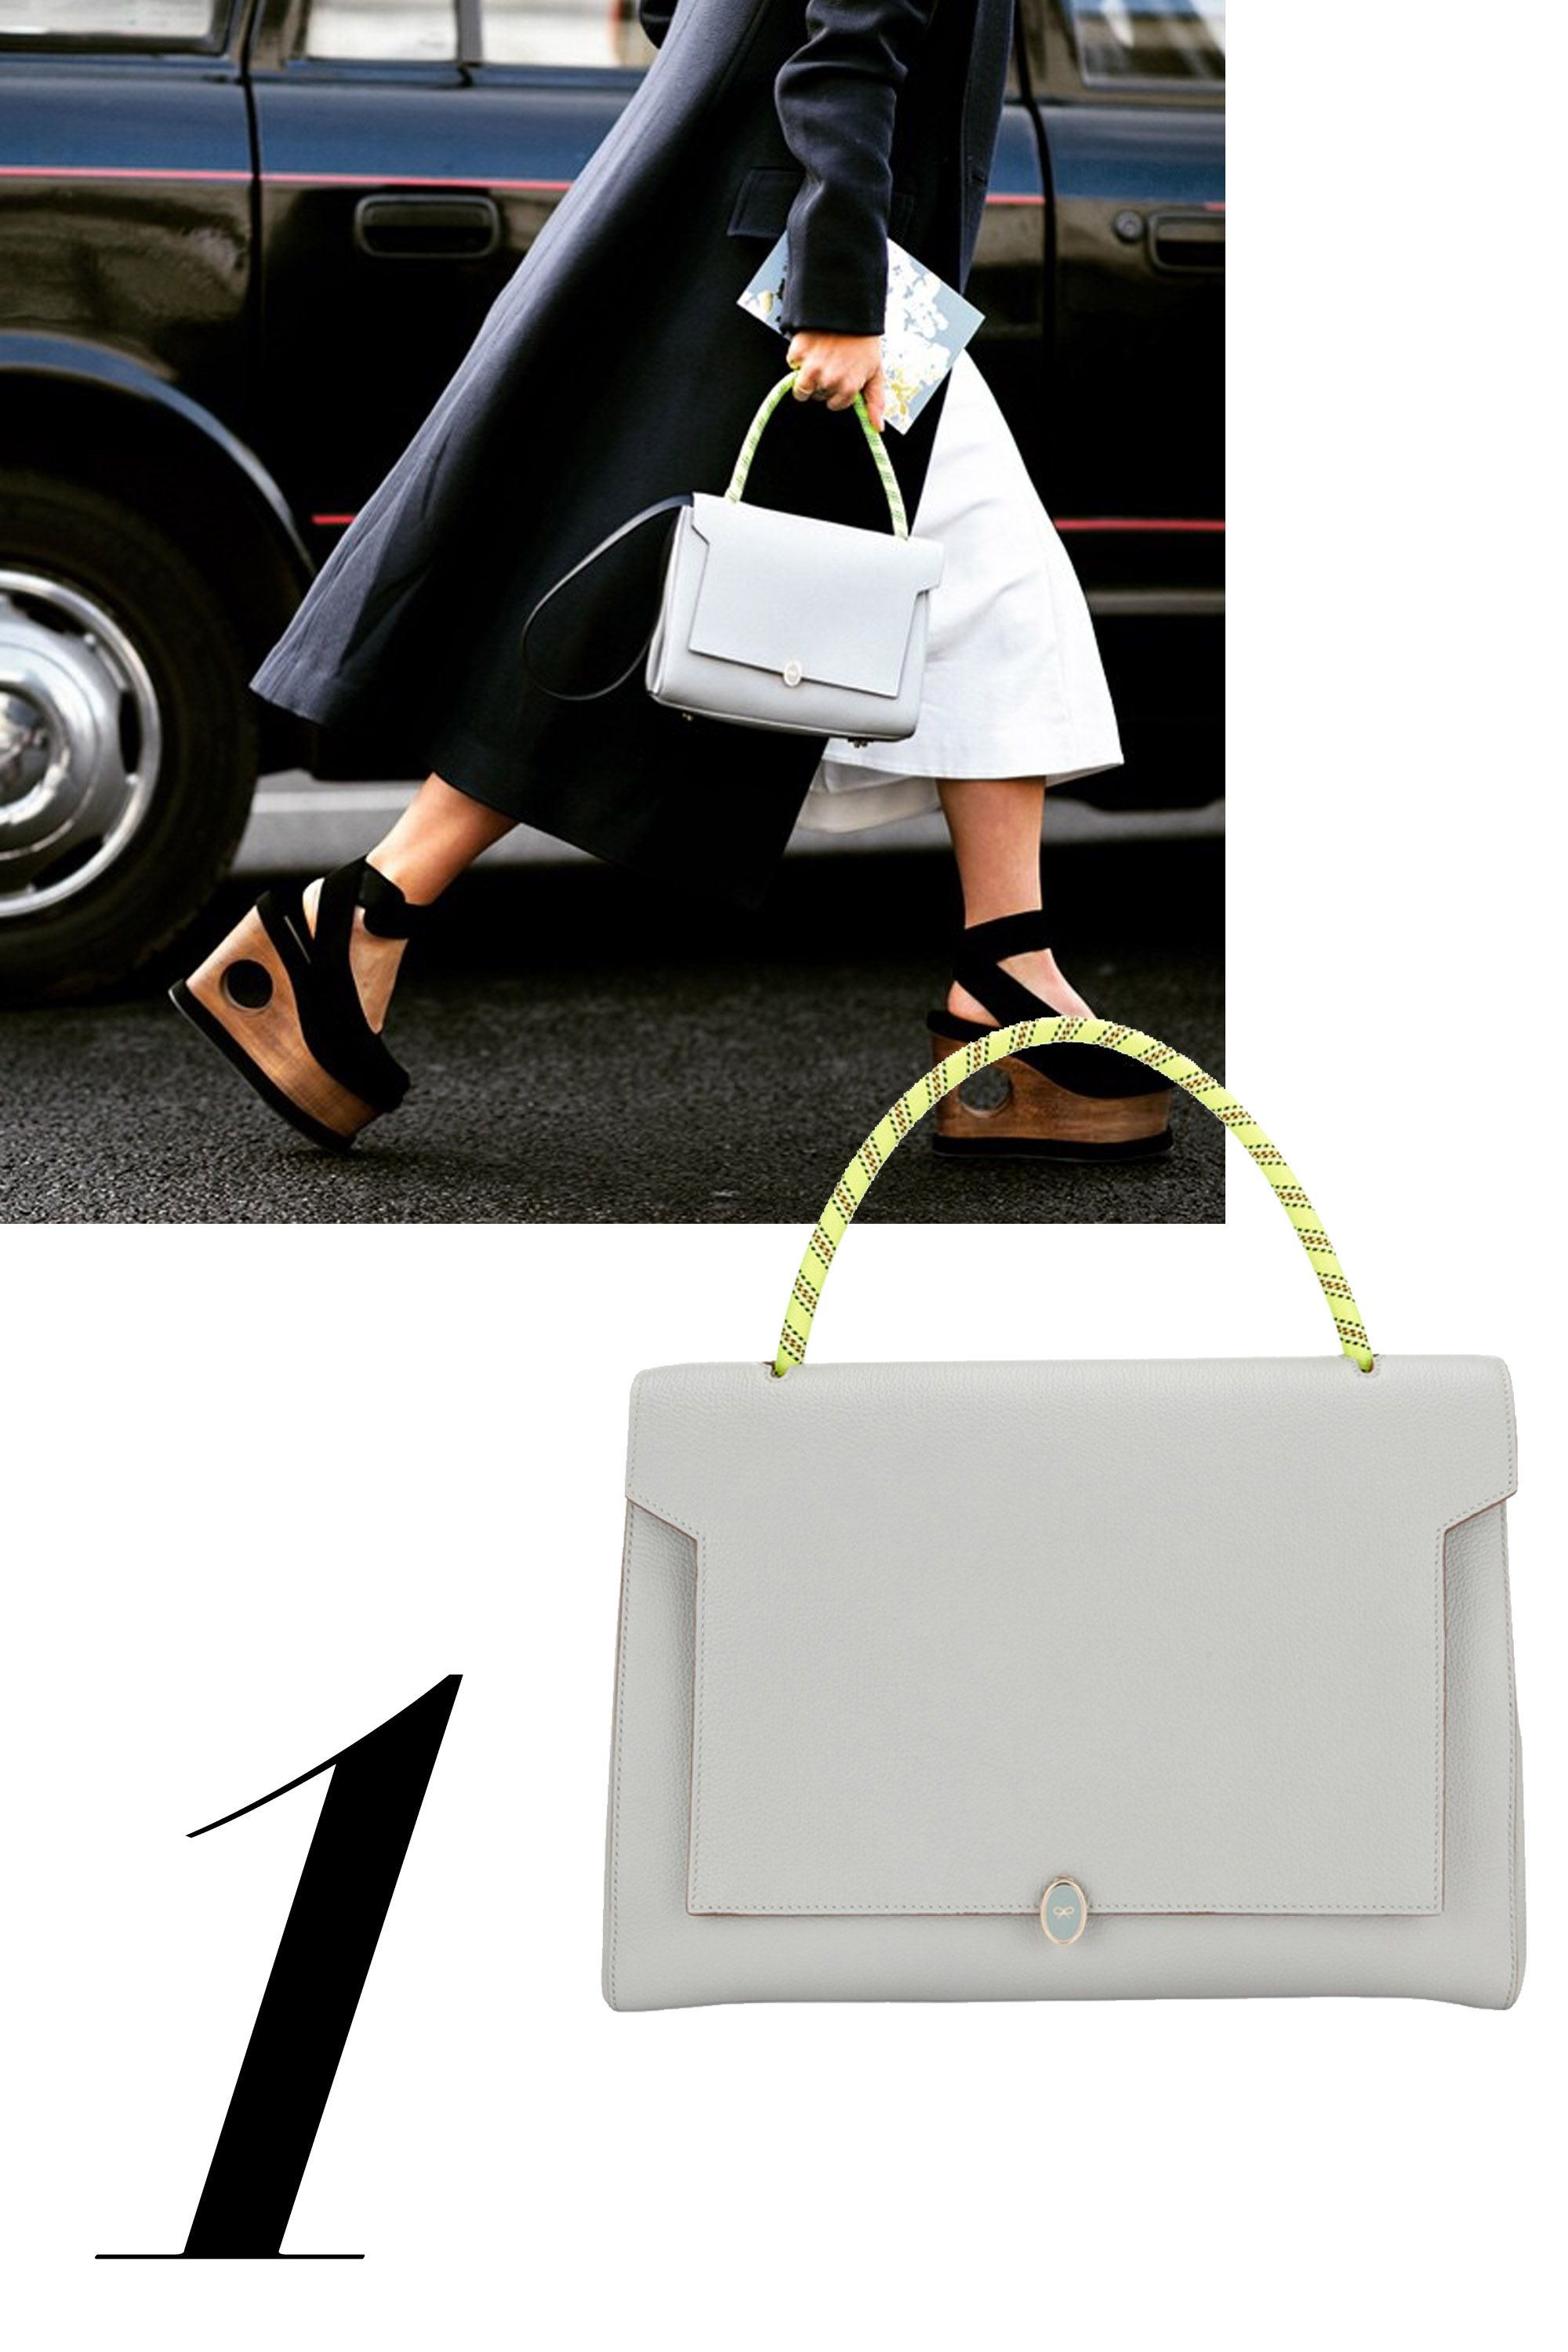 Kate Foley, @therealkatefoley